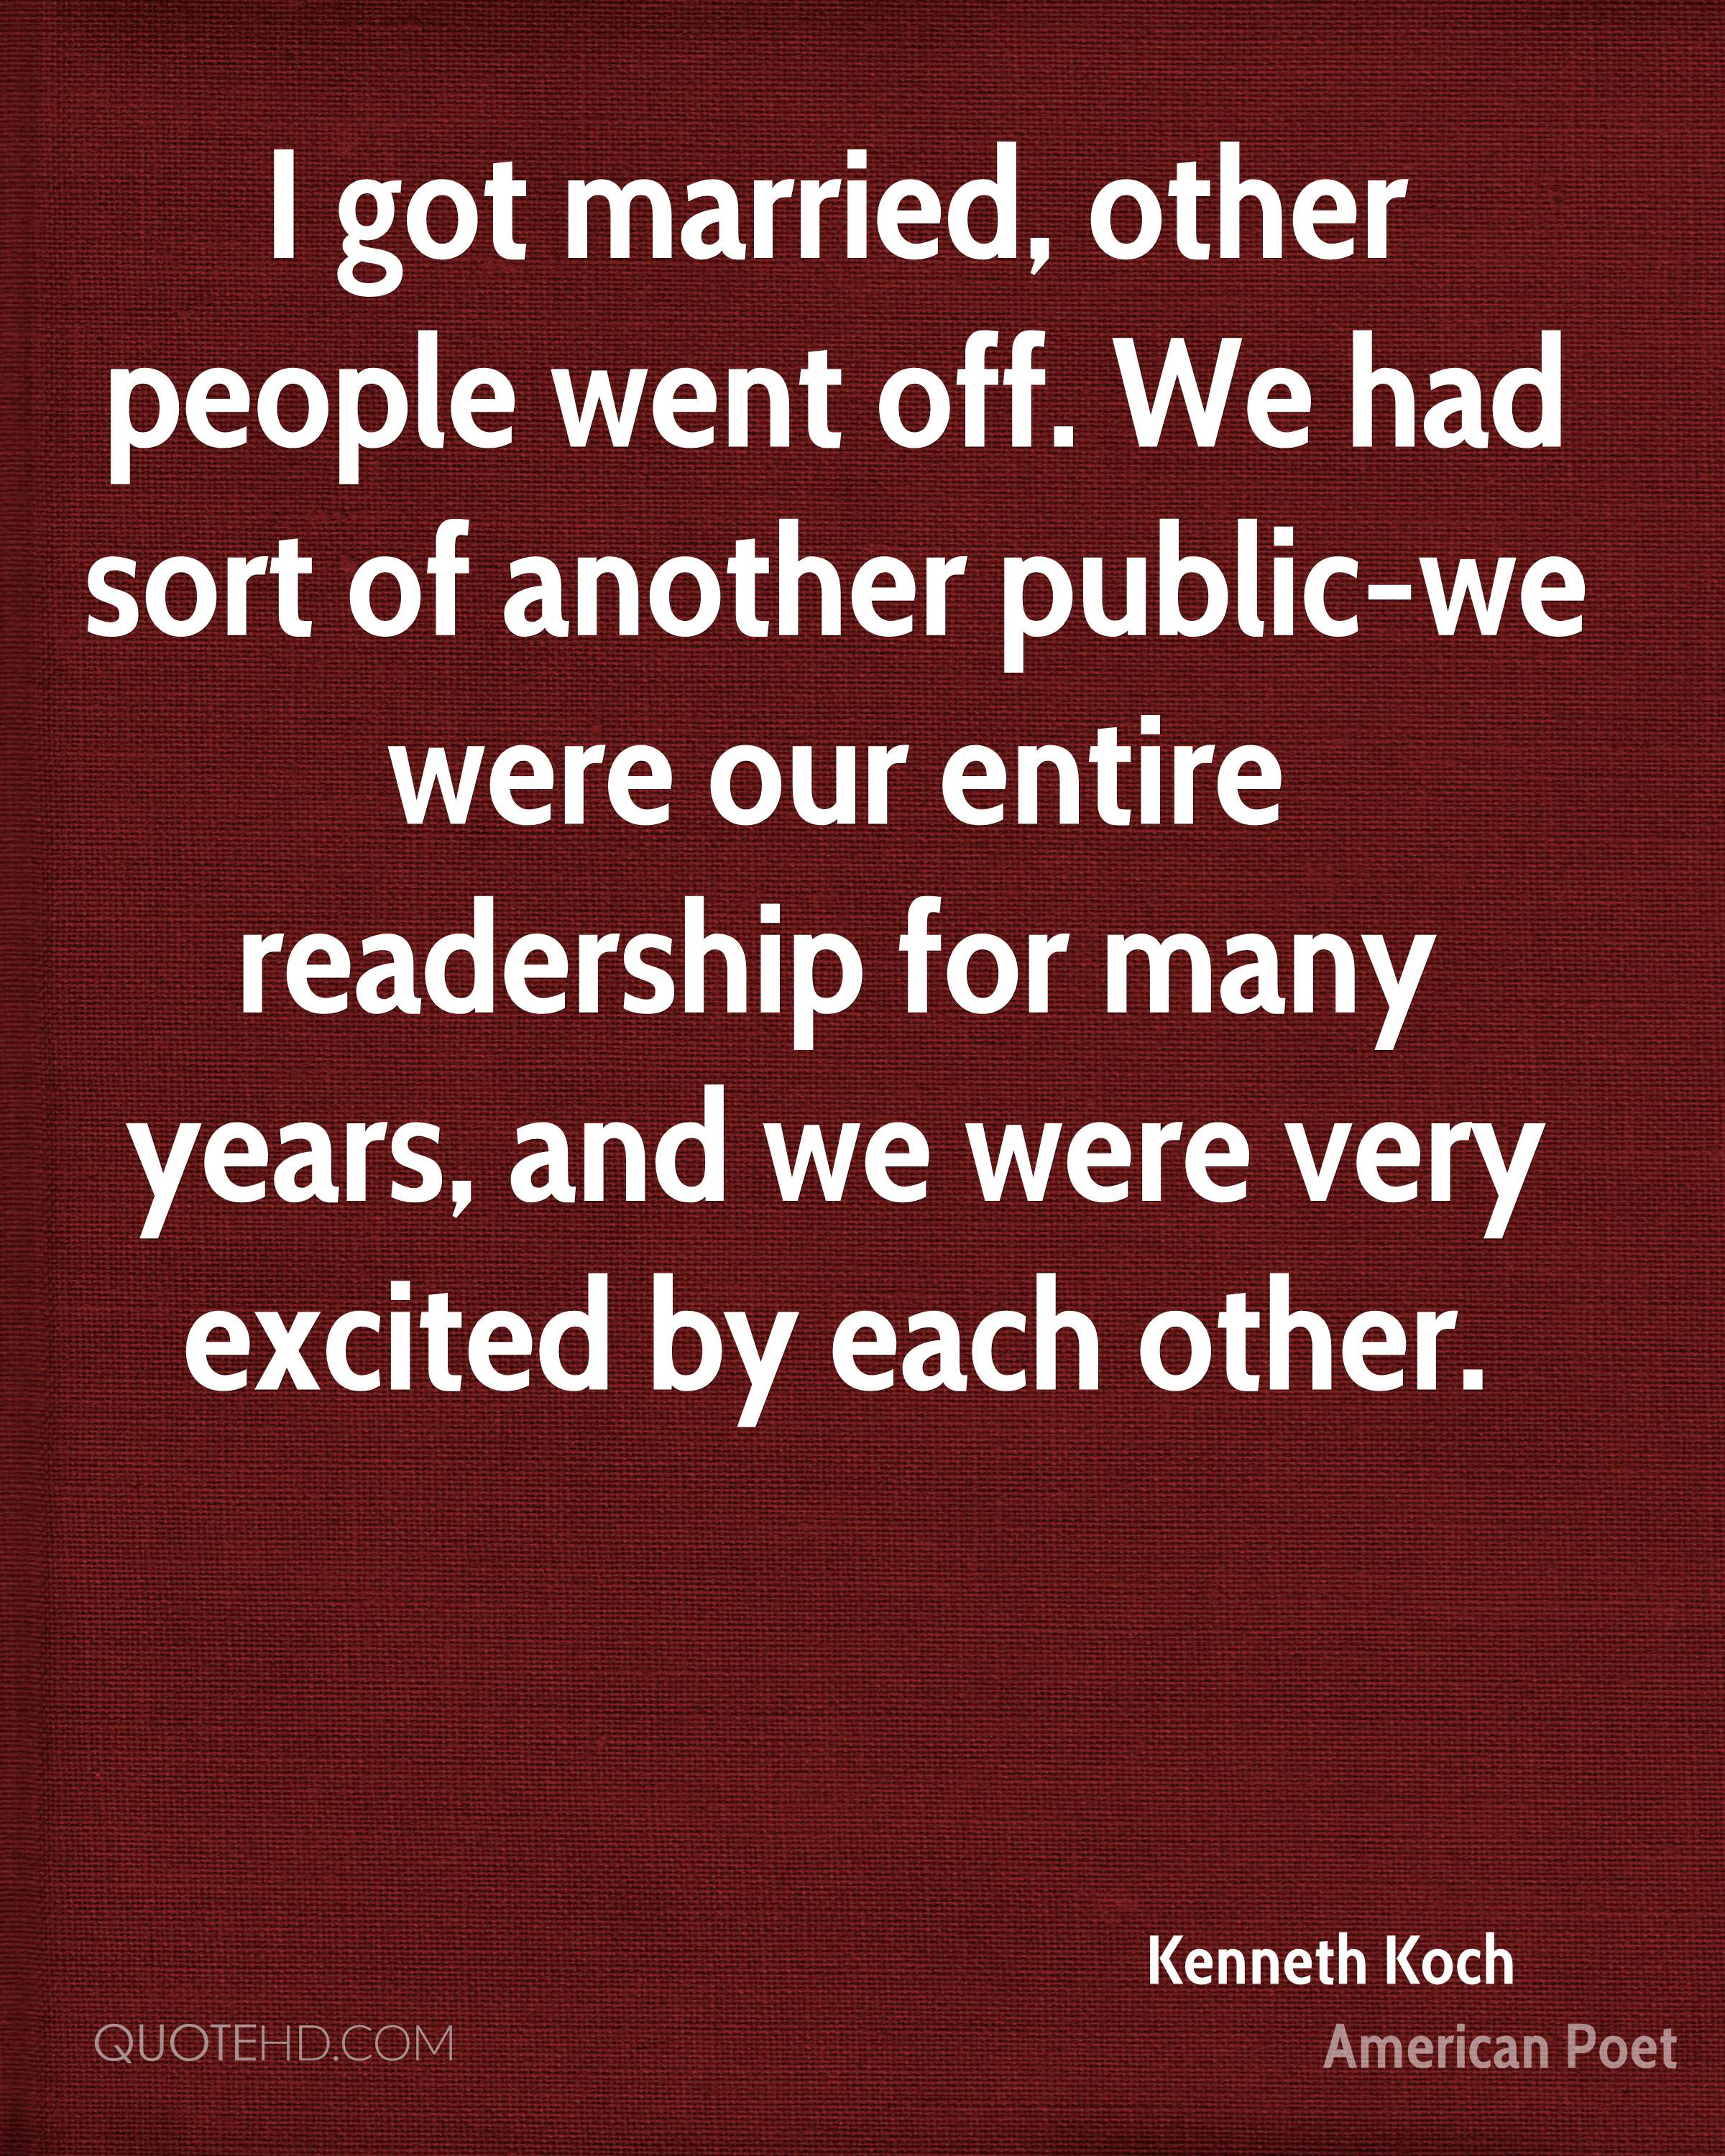 I got married, other people went off. We had sort of another public-we were our entire readership for many years, and we were very excited by each other.